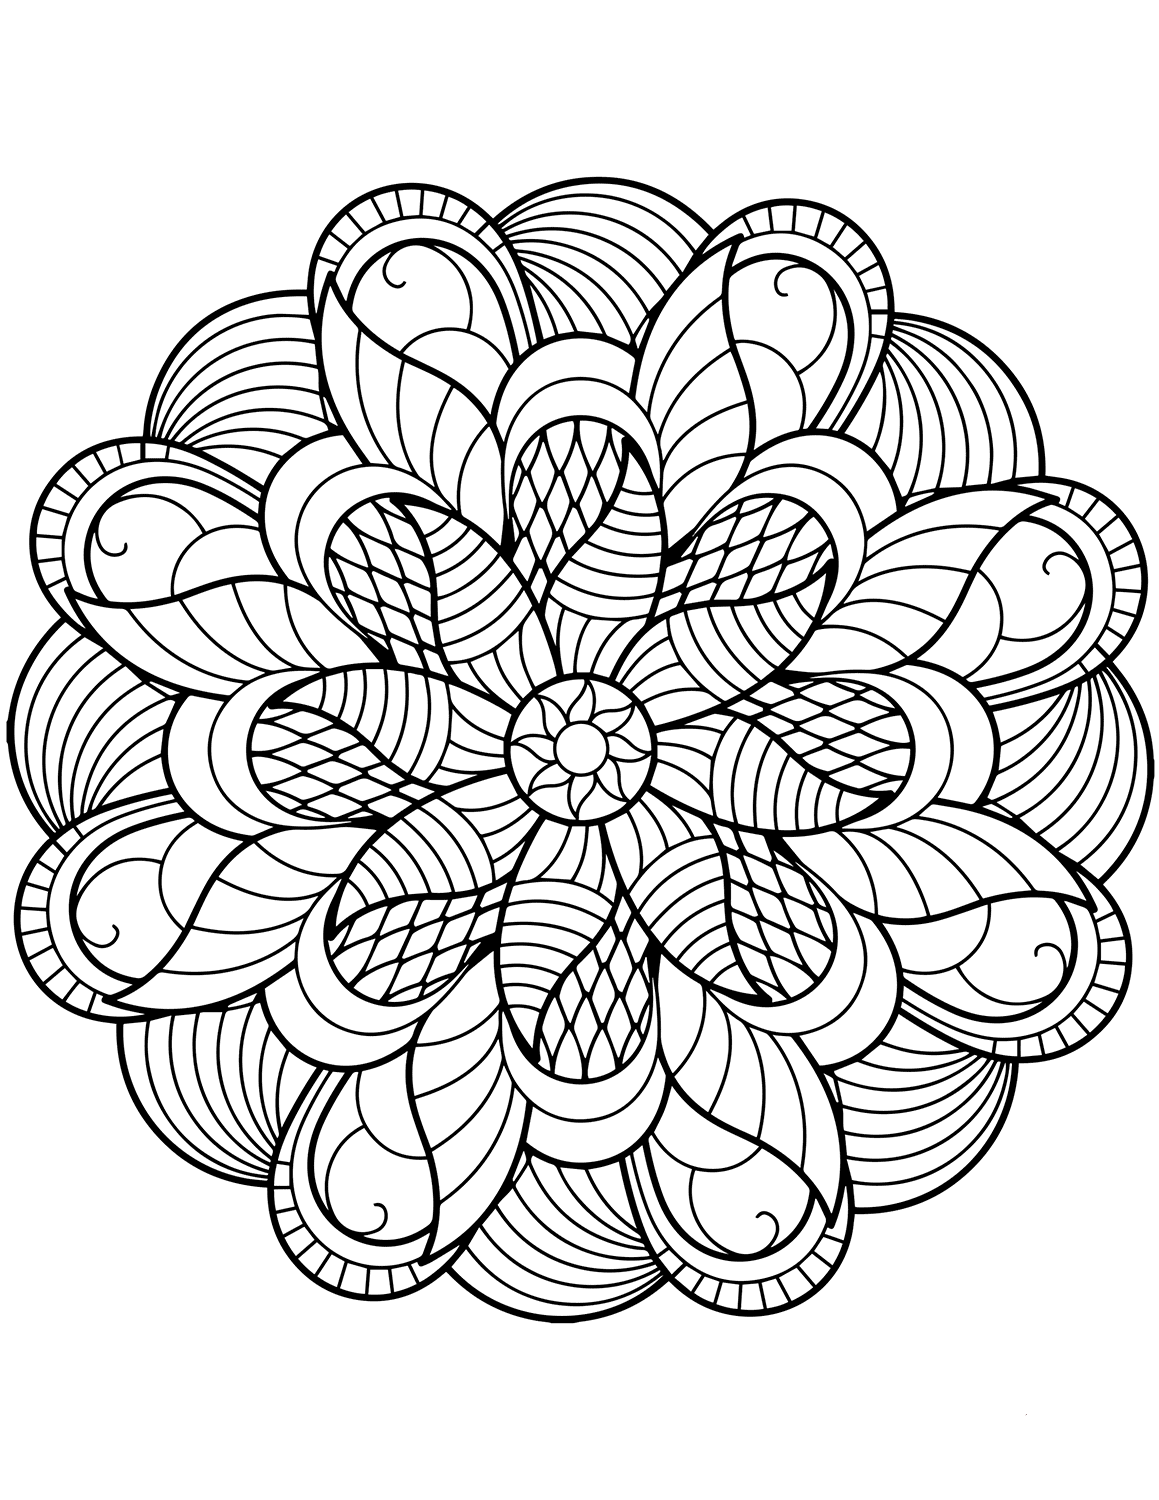 mandala free printable free printable geometric coloring pages for kids free printable mandala